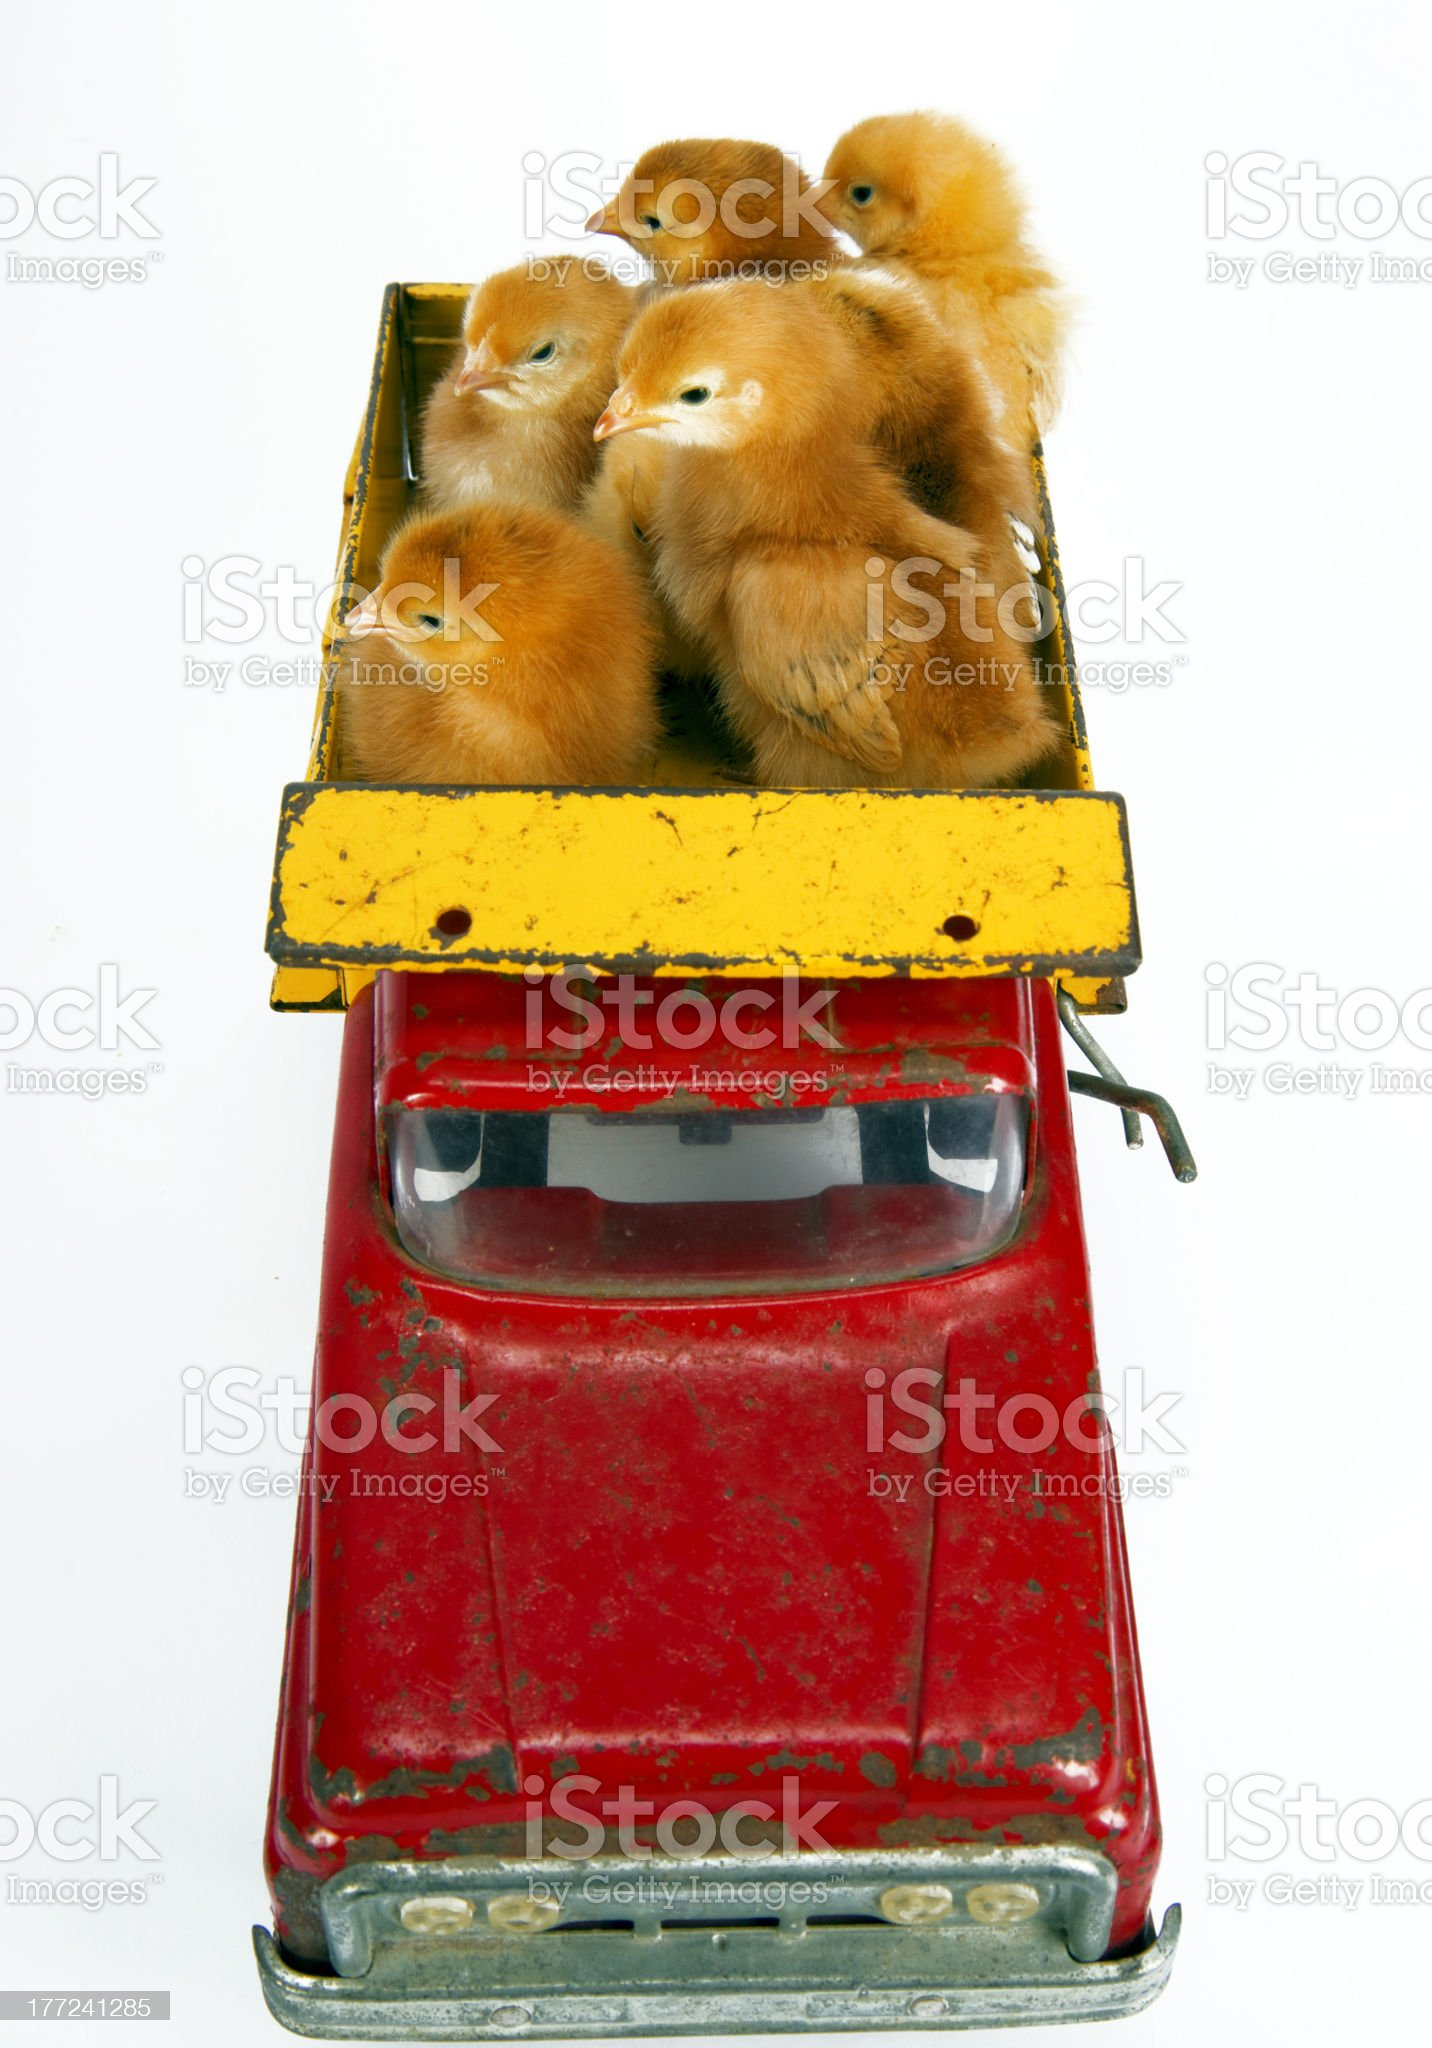 Newborn Baby Chickens Loaded in the Back Vintage Toy Truck royalty-free stock photo